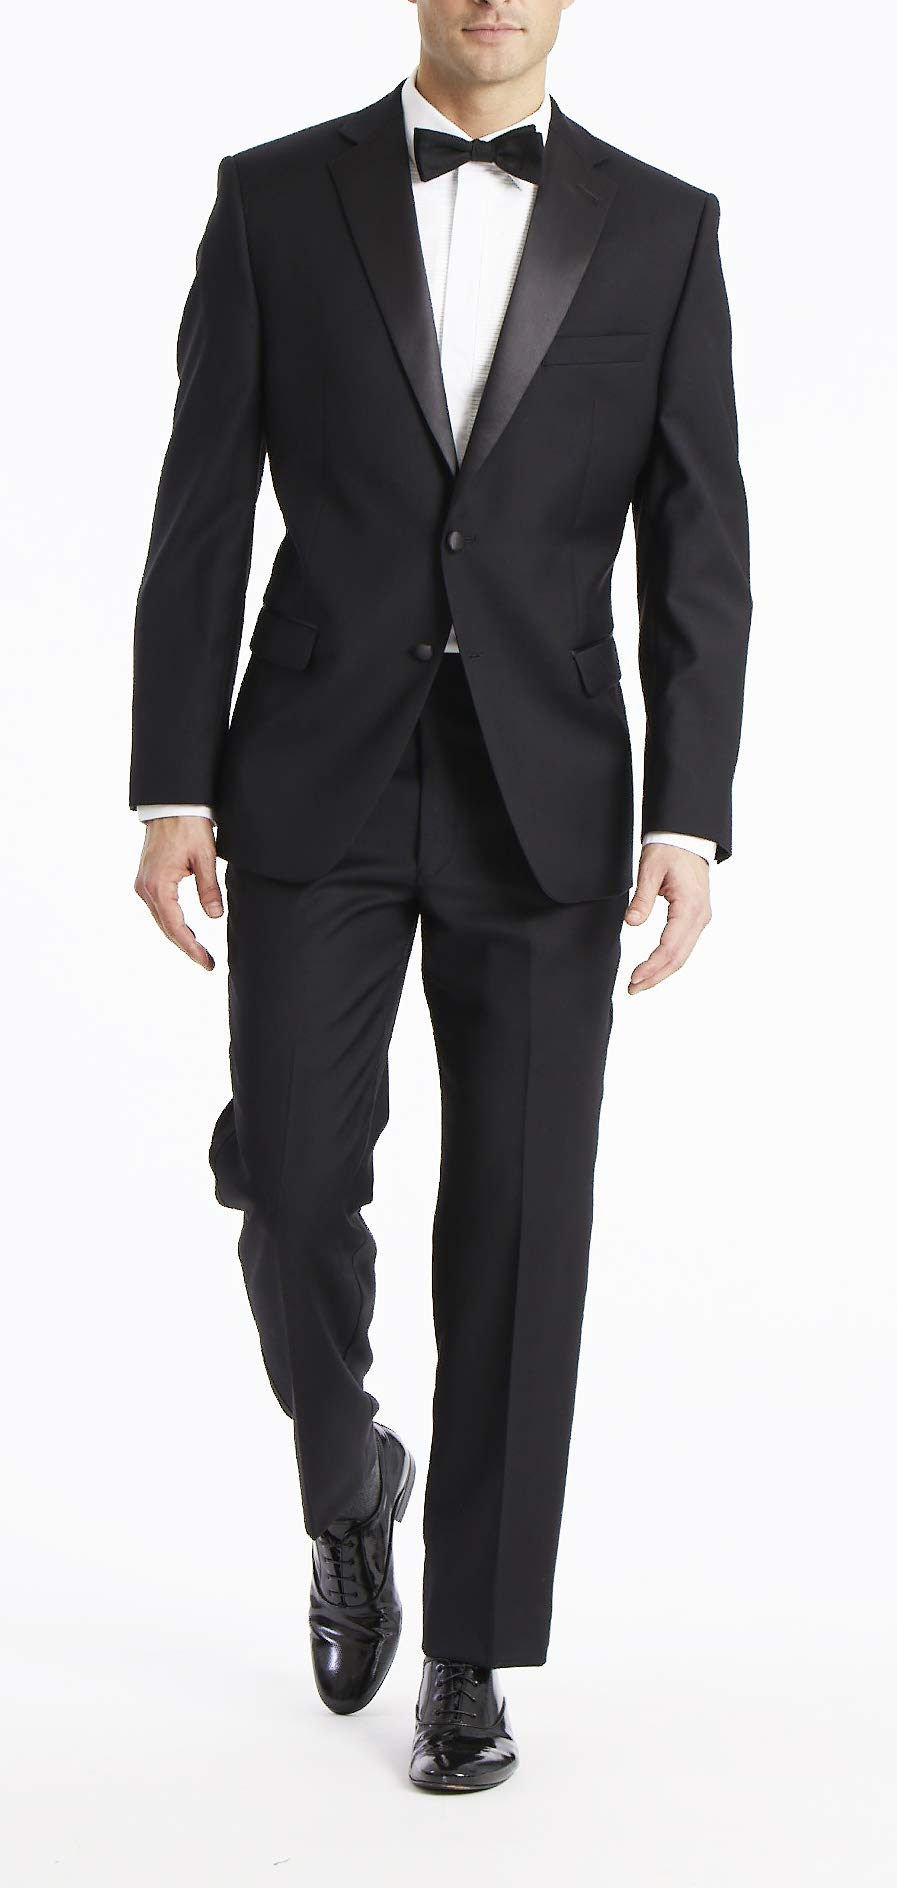 Calvin Klein Men's Modern Fit 100% Wool Tuxedo, Black, 40 Regular by Calvin Klein